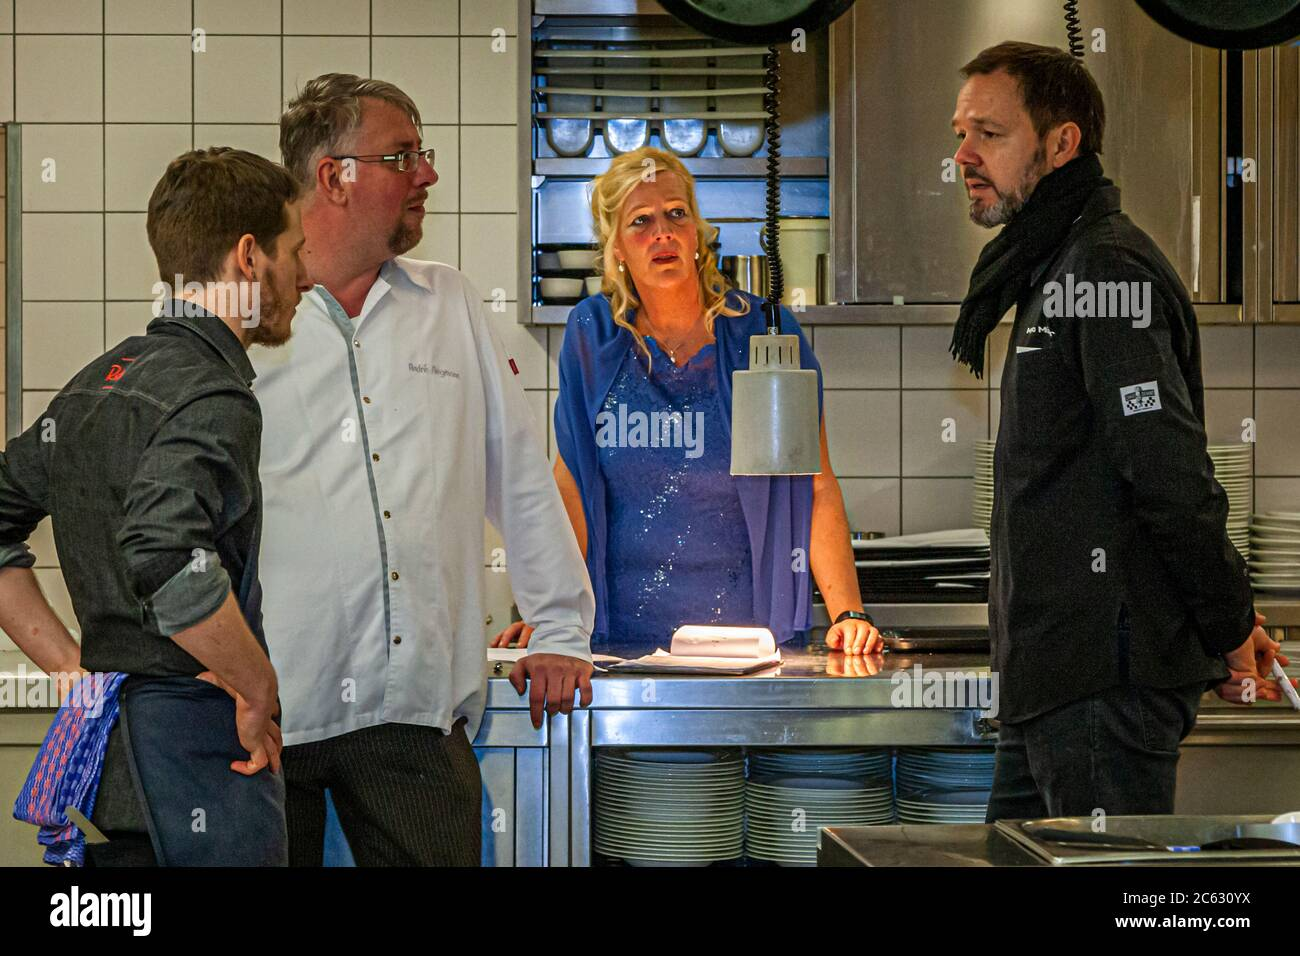 Five courses for 100 guests will soon be sent from here. André Siegmann, Karin Brockmeier and Marco Müller are ready. Michelin Star Chef Marco Müller in Sankt Peter-Ording, Germany Stock Photo